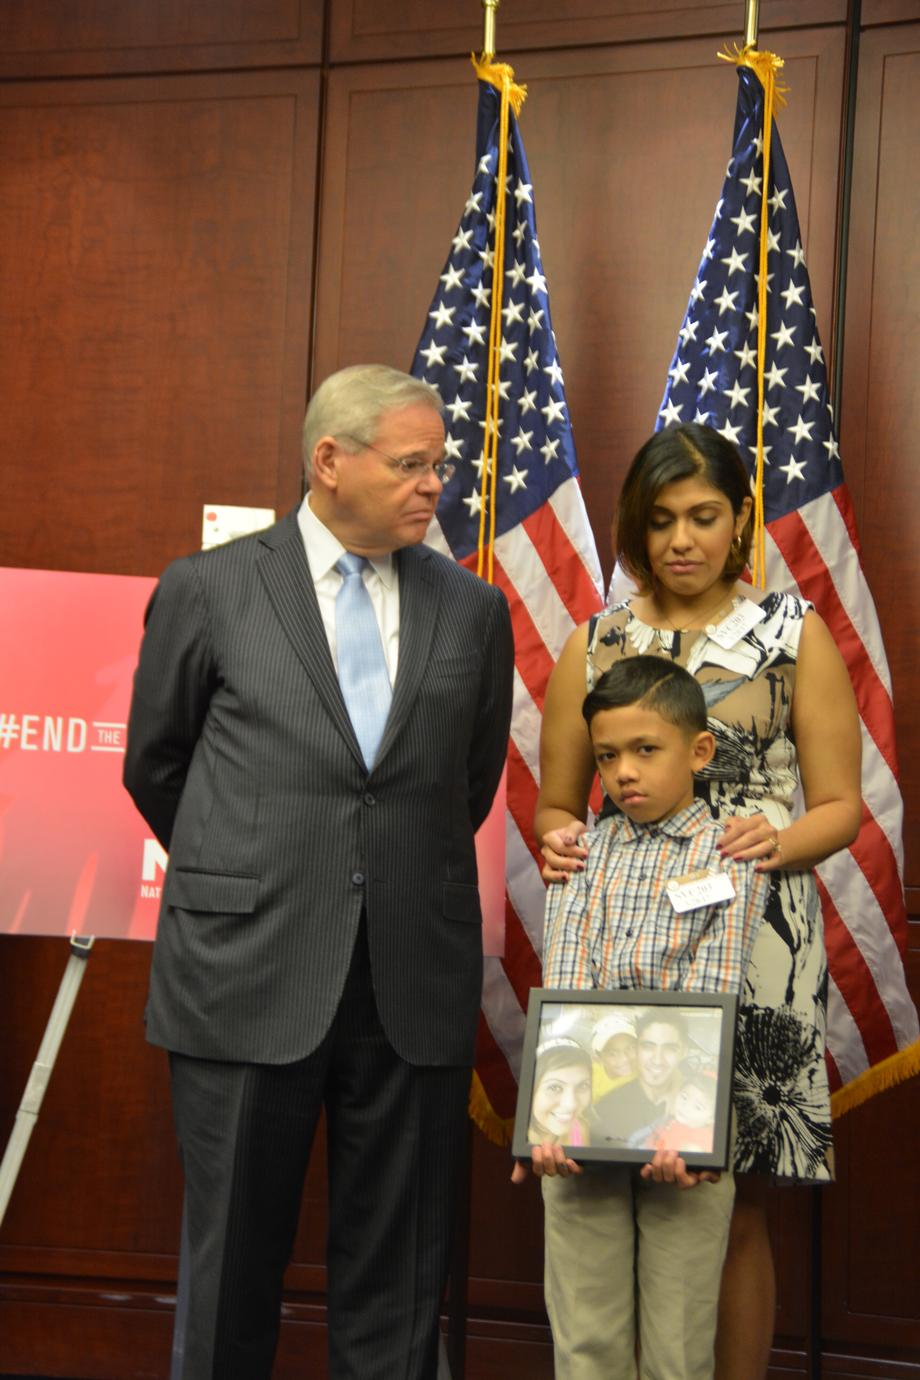 Senator Menendez Introducing the PROFILED Act to Counter Trump Immigration Actions